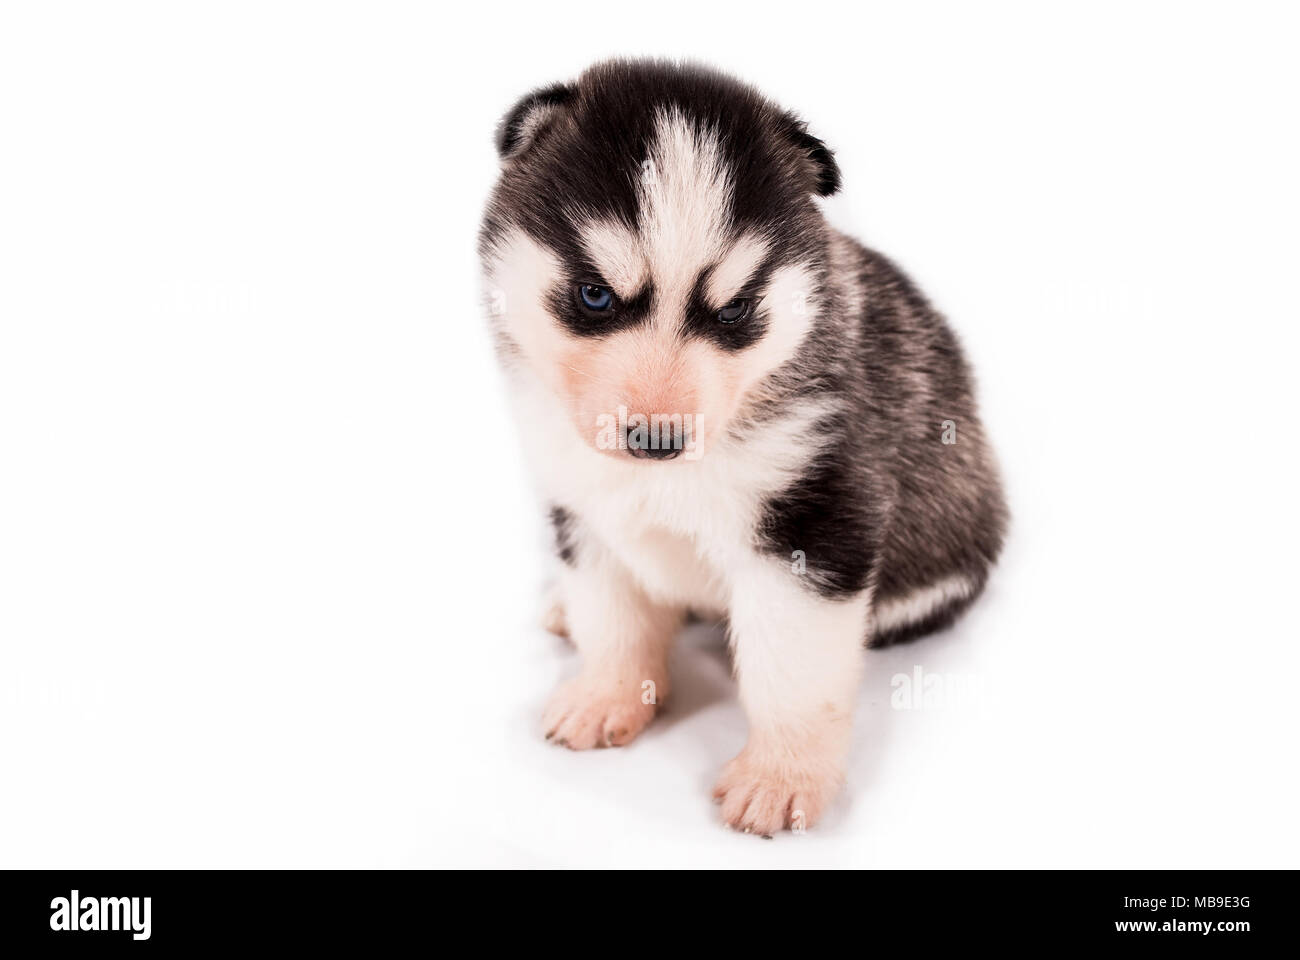 Cute baby puppy Siberian Husky posing on a white background - Stock Image